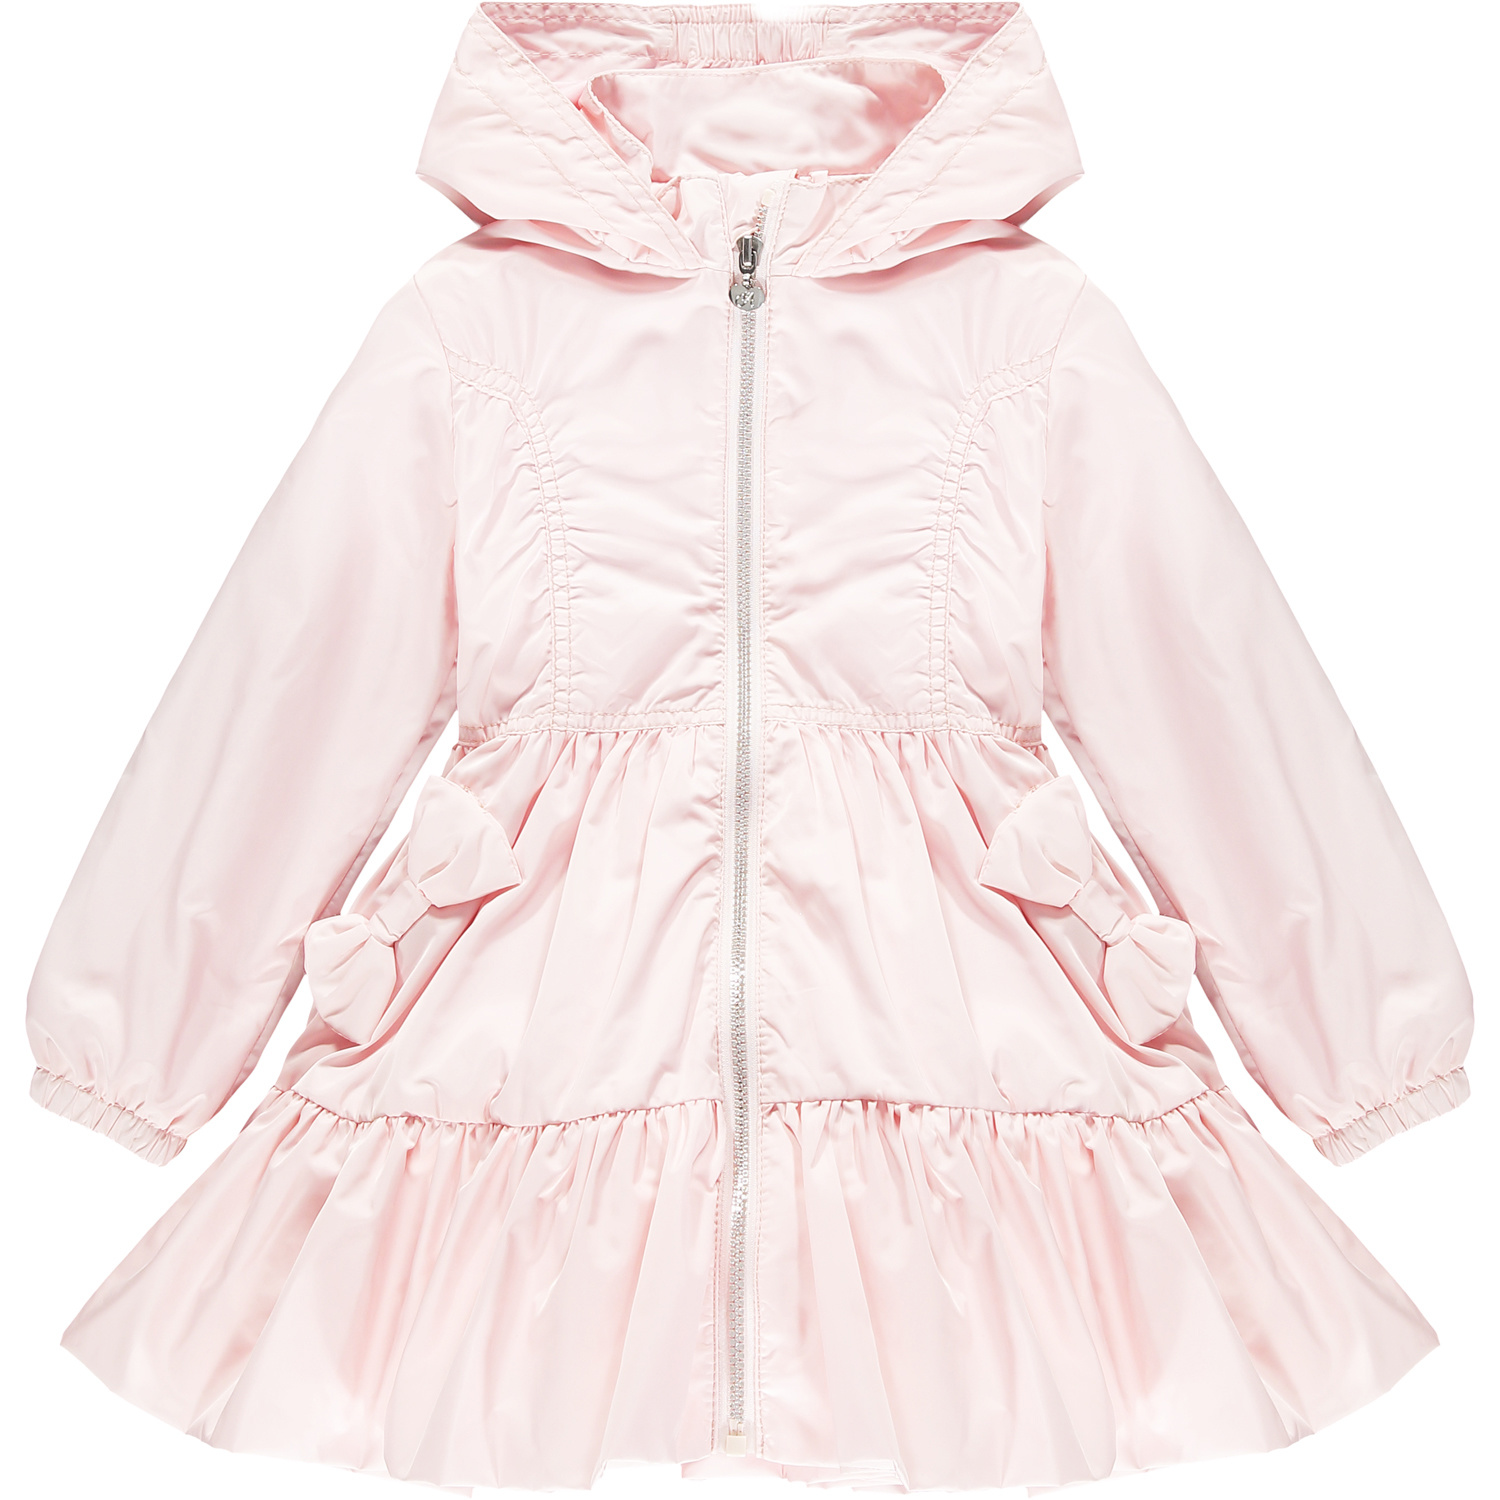 Adee Adee Lacey Wide Frill Bow Jacket Pink